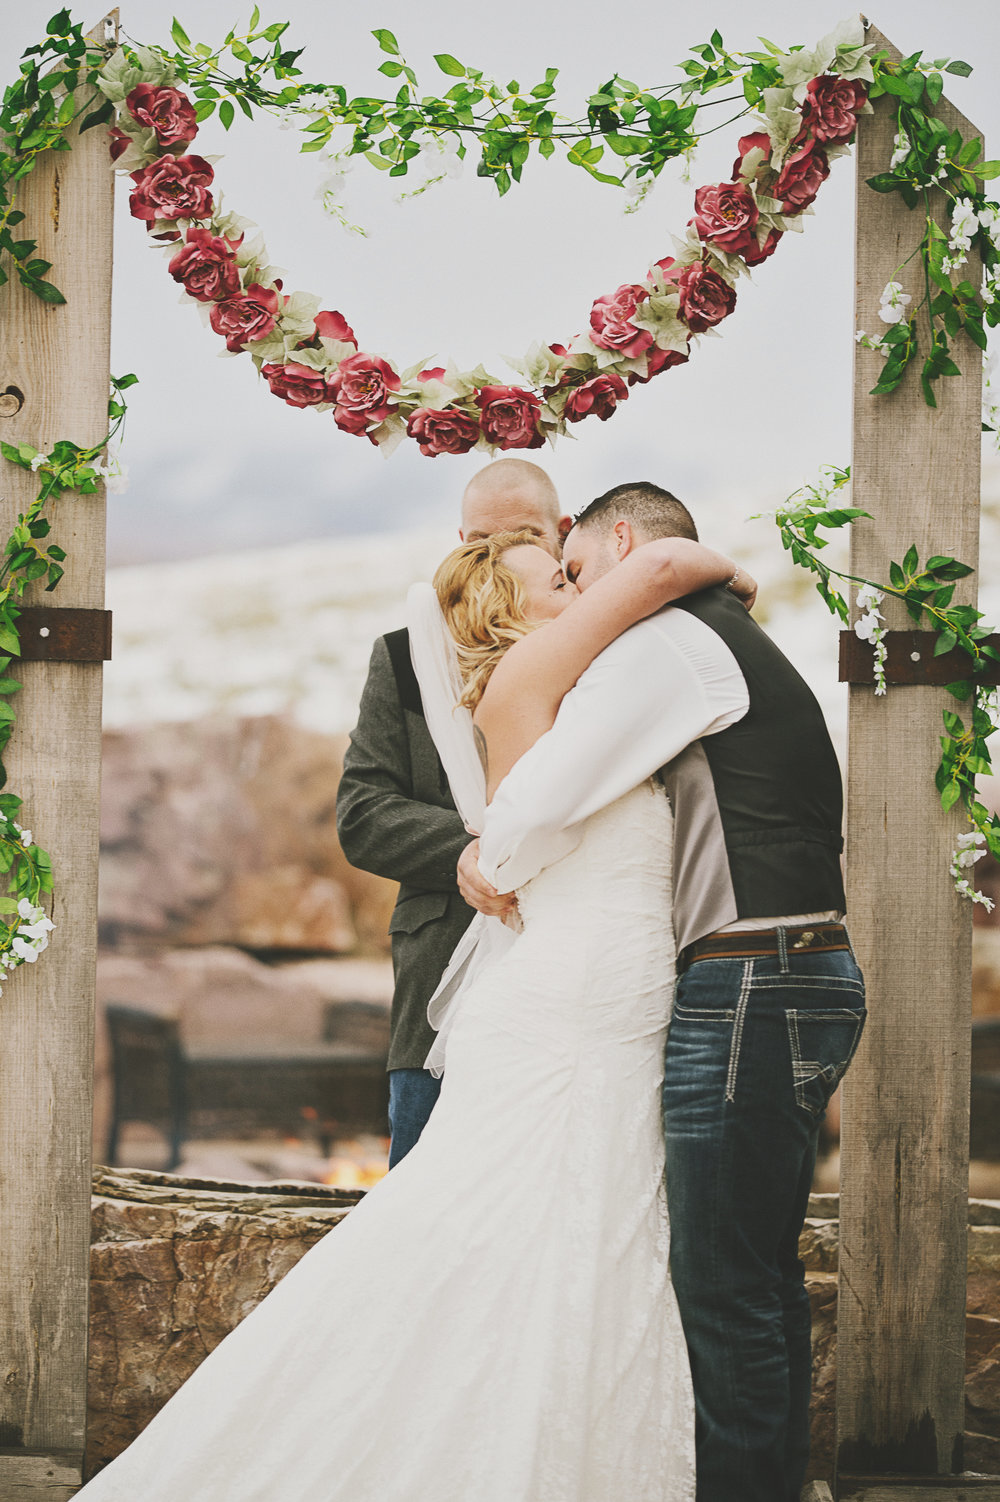 Winter Montana Wedding_Leighanne Parker + Ethan Ramos_Kelsey Lane Photography-7979 copy.jpg